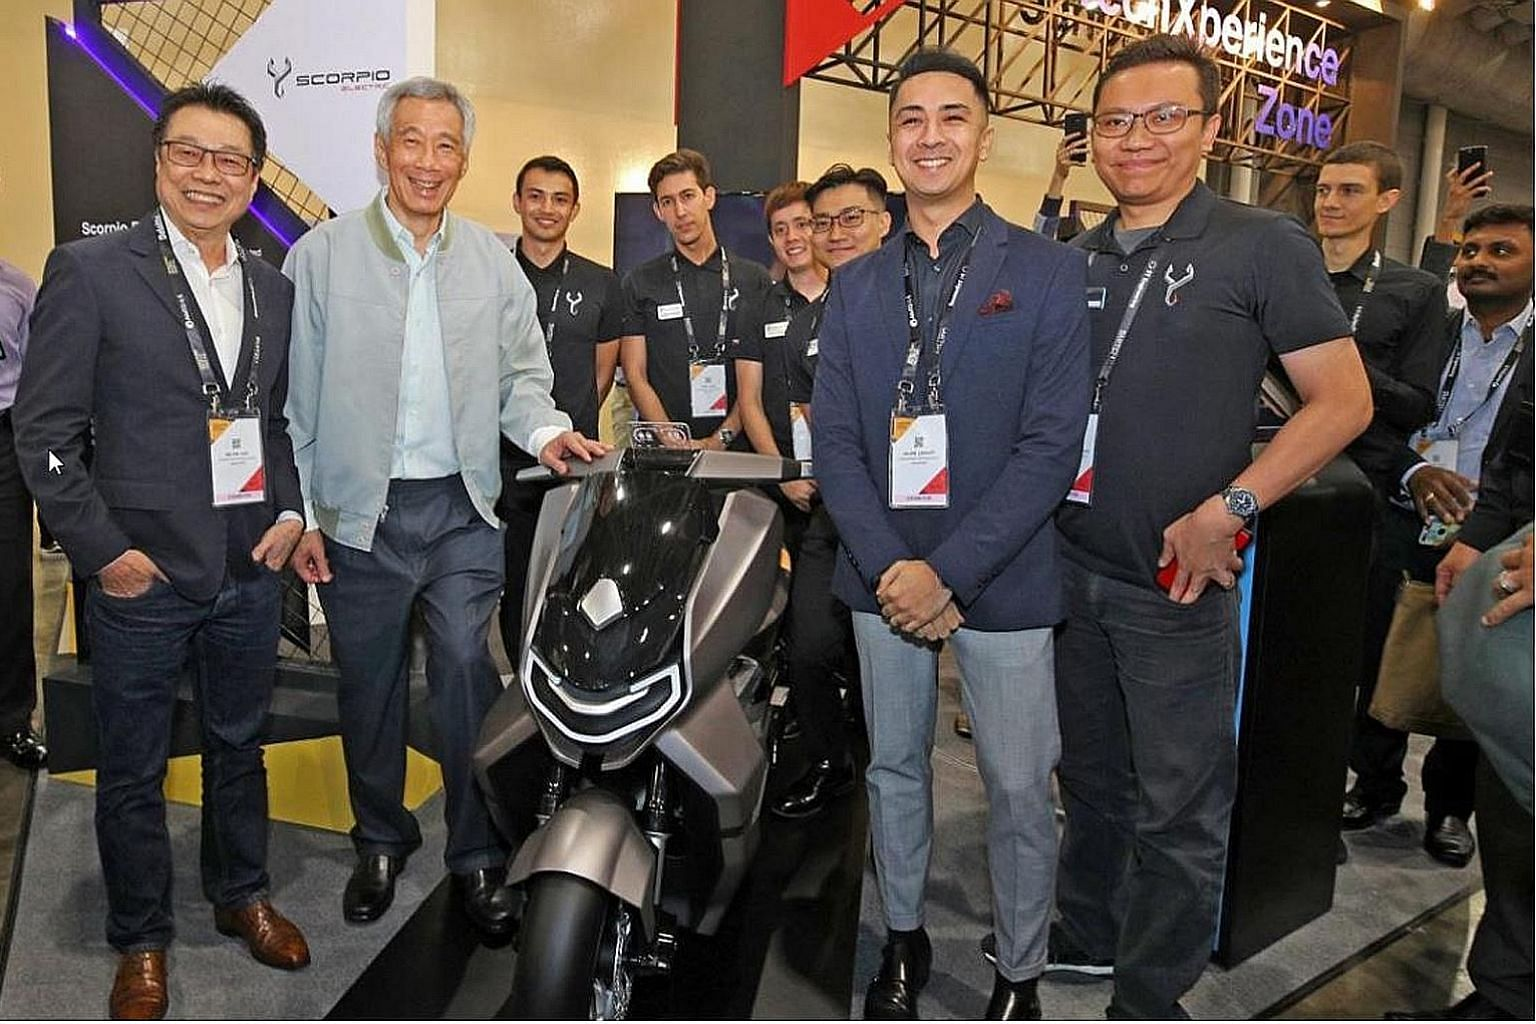 (From left) Mr Melvin Goh, chief executive of Scorpio Electric, Prime Minister Lee Hsien Loong, KTM Asia Managing Director Julian Legazpi and Acting Head of Operation at Scorpio Electric Muhammad Taureza posing with the scale model of the Scorpio EST